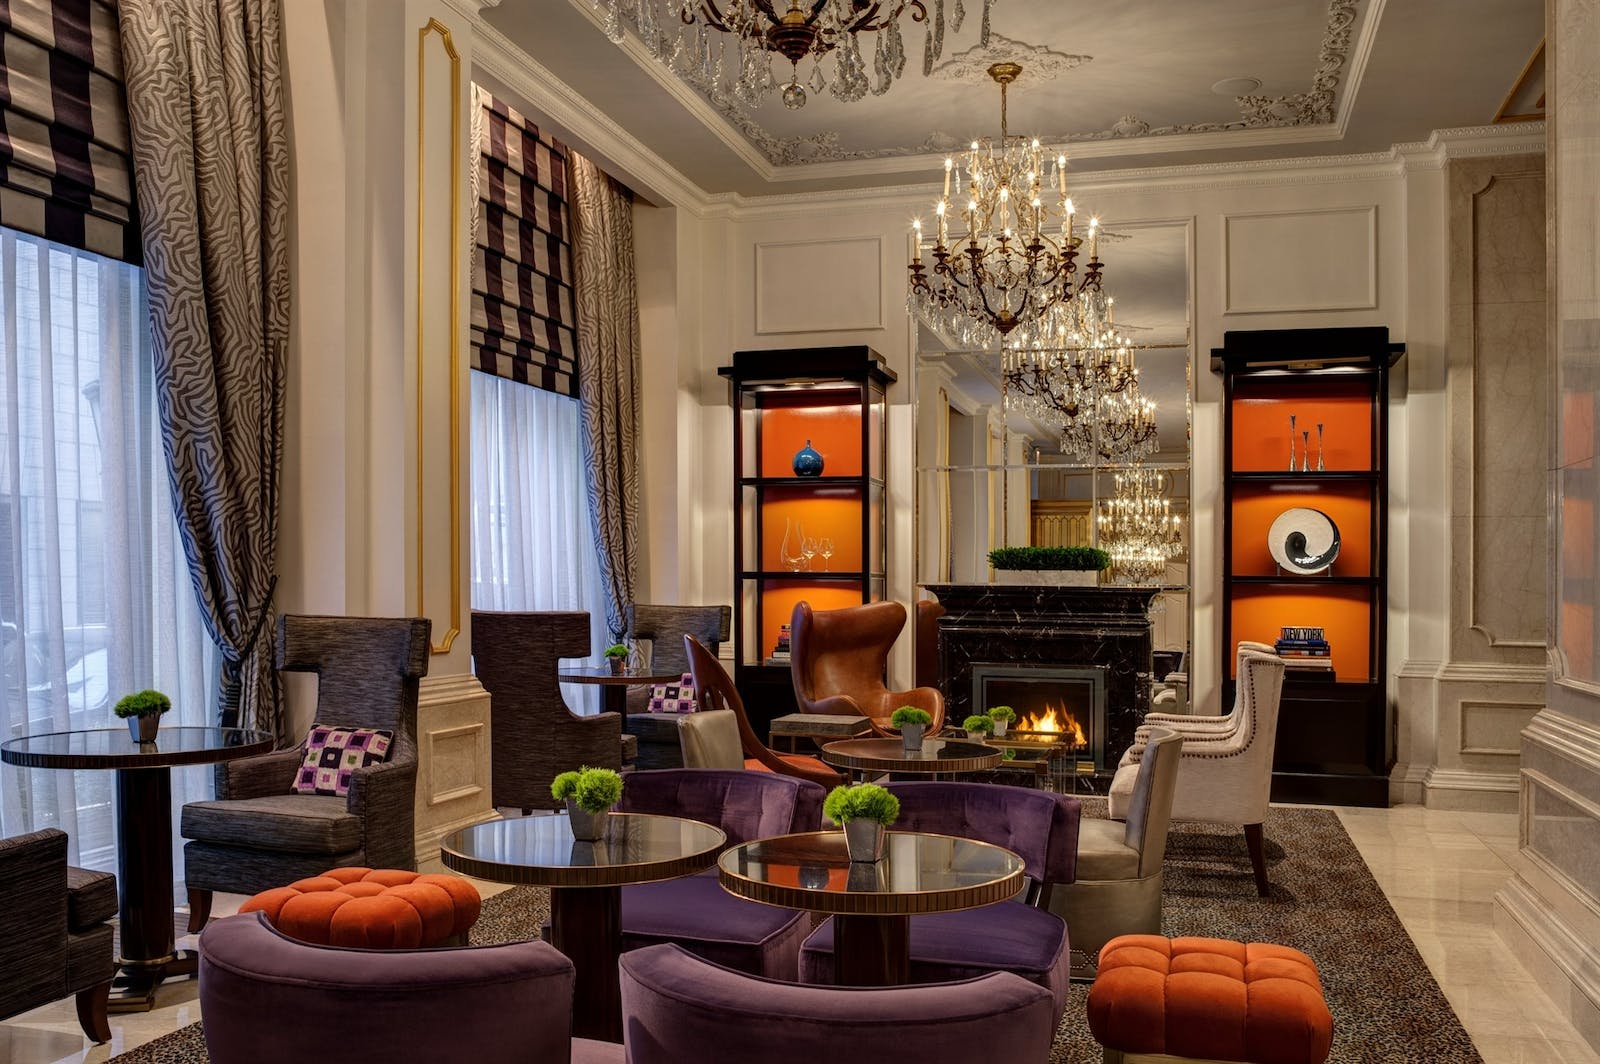 astor court fireplace at the st regis new york